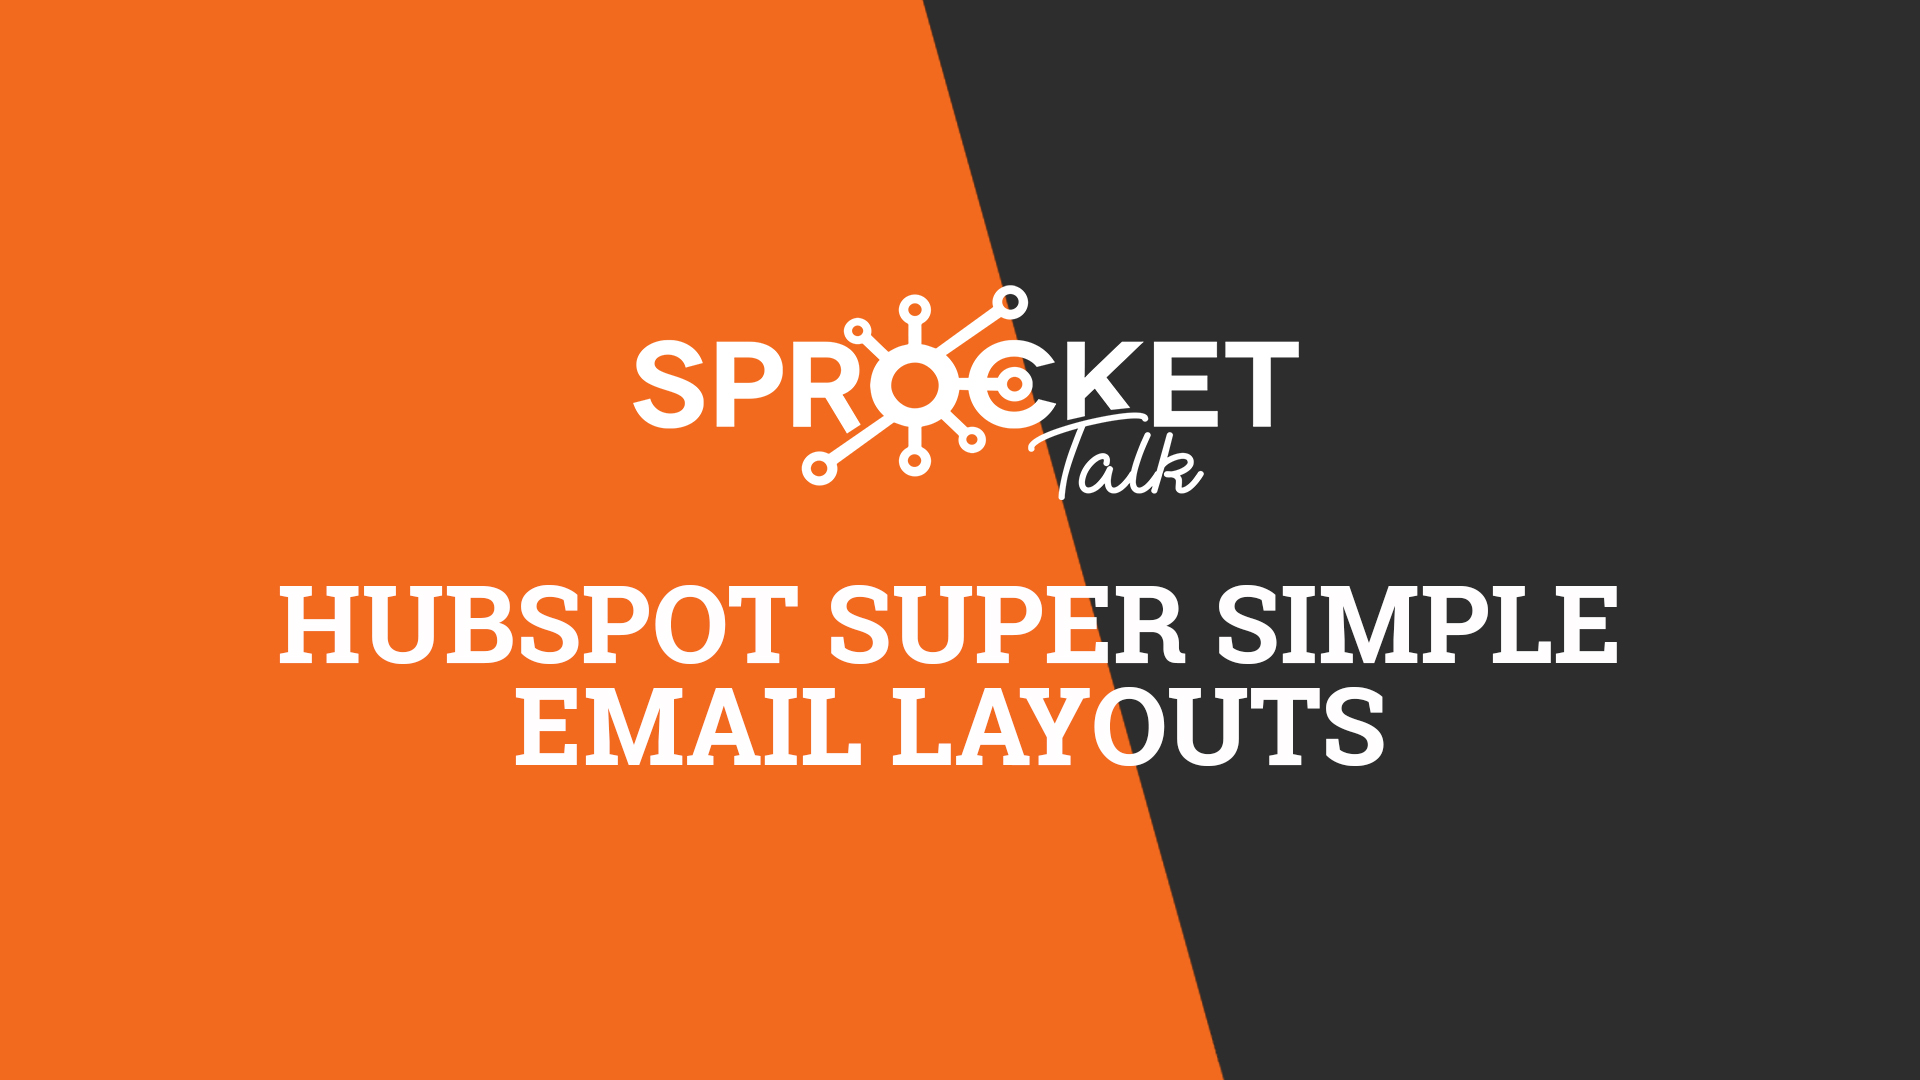 HubSpot Super Simple Email Layouts